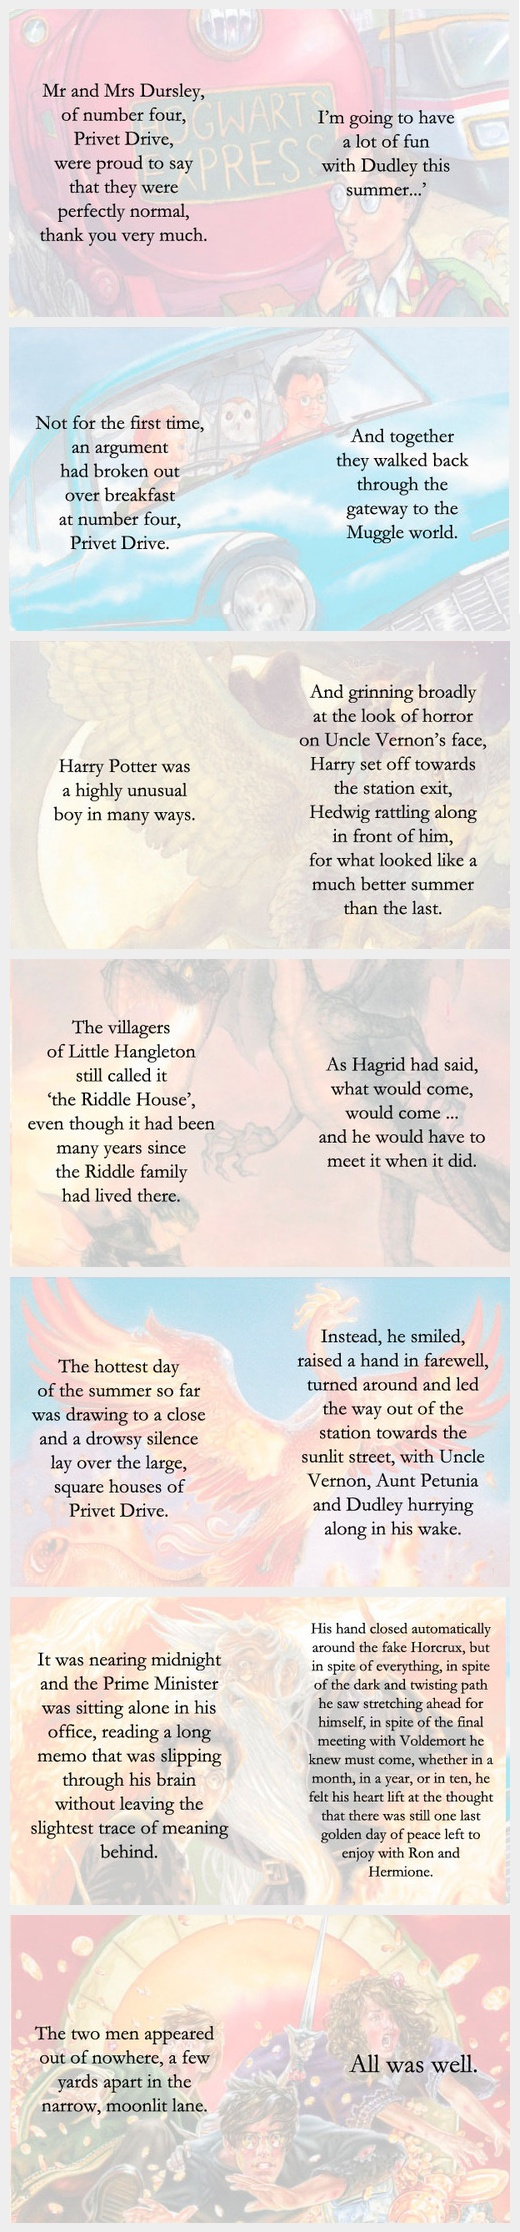 First and Last lines of each Harry Potter book.....